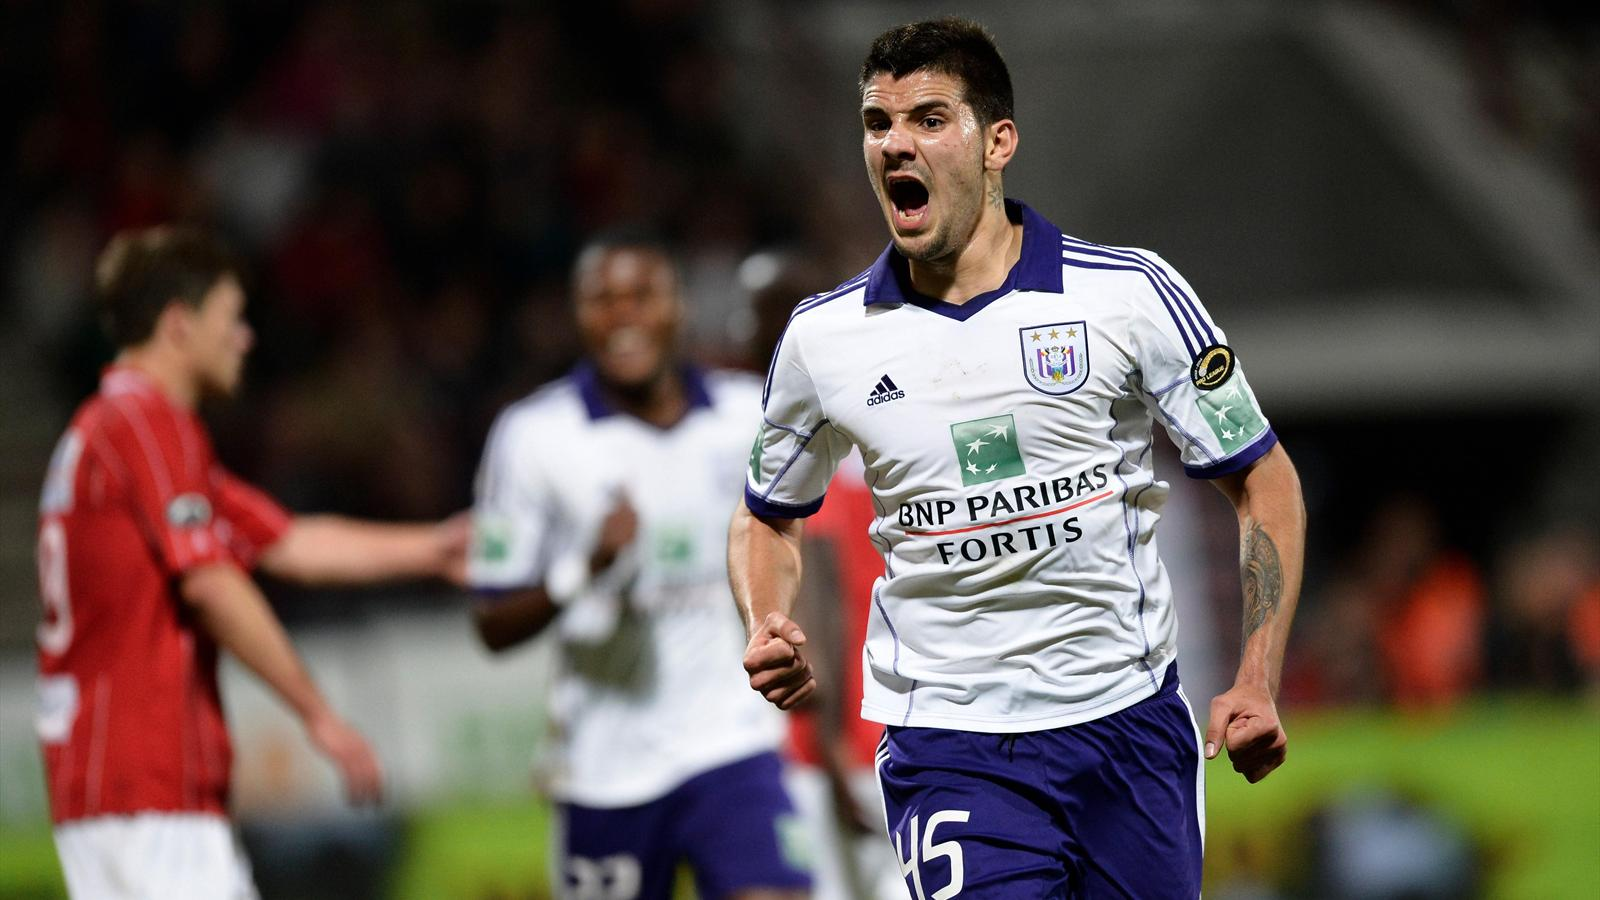 Match Sporting Anderlecht vs Arsenal en direct live streaming